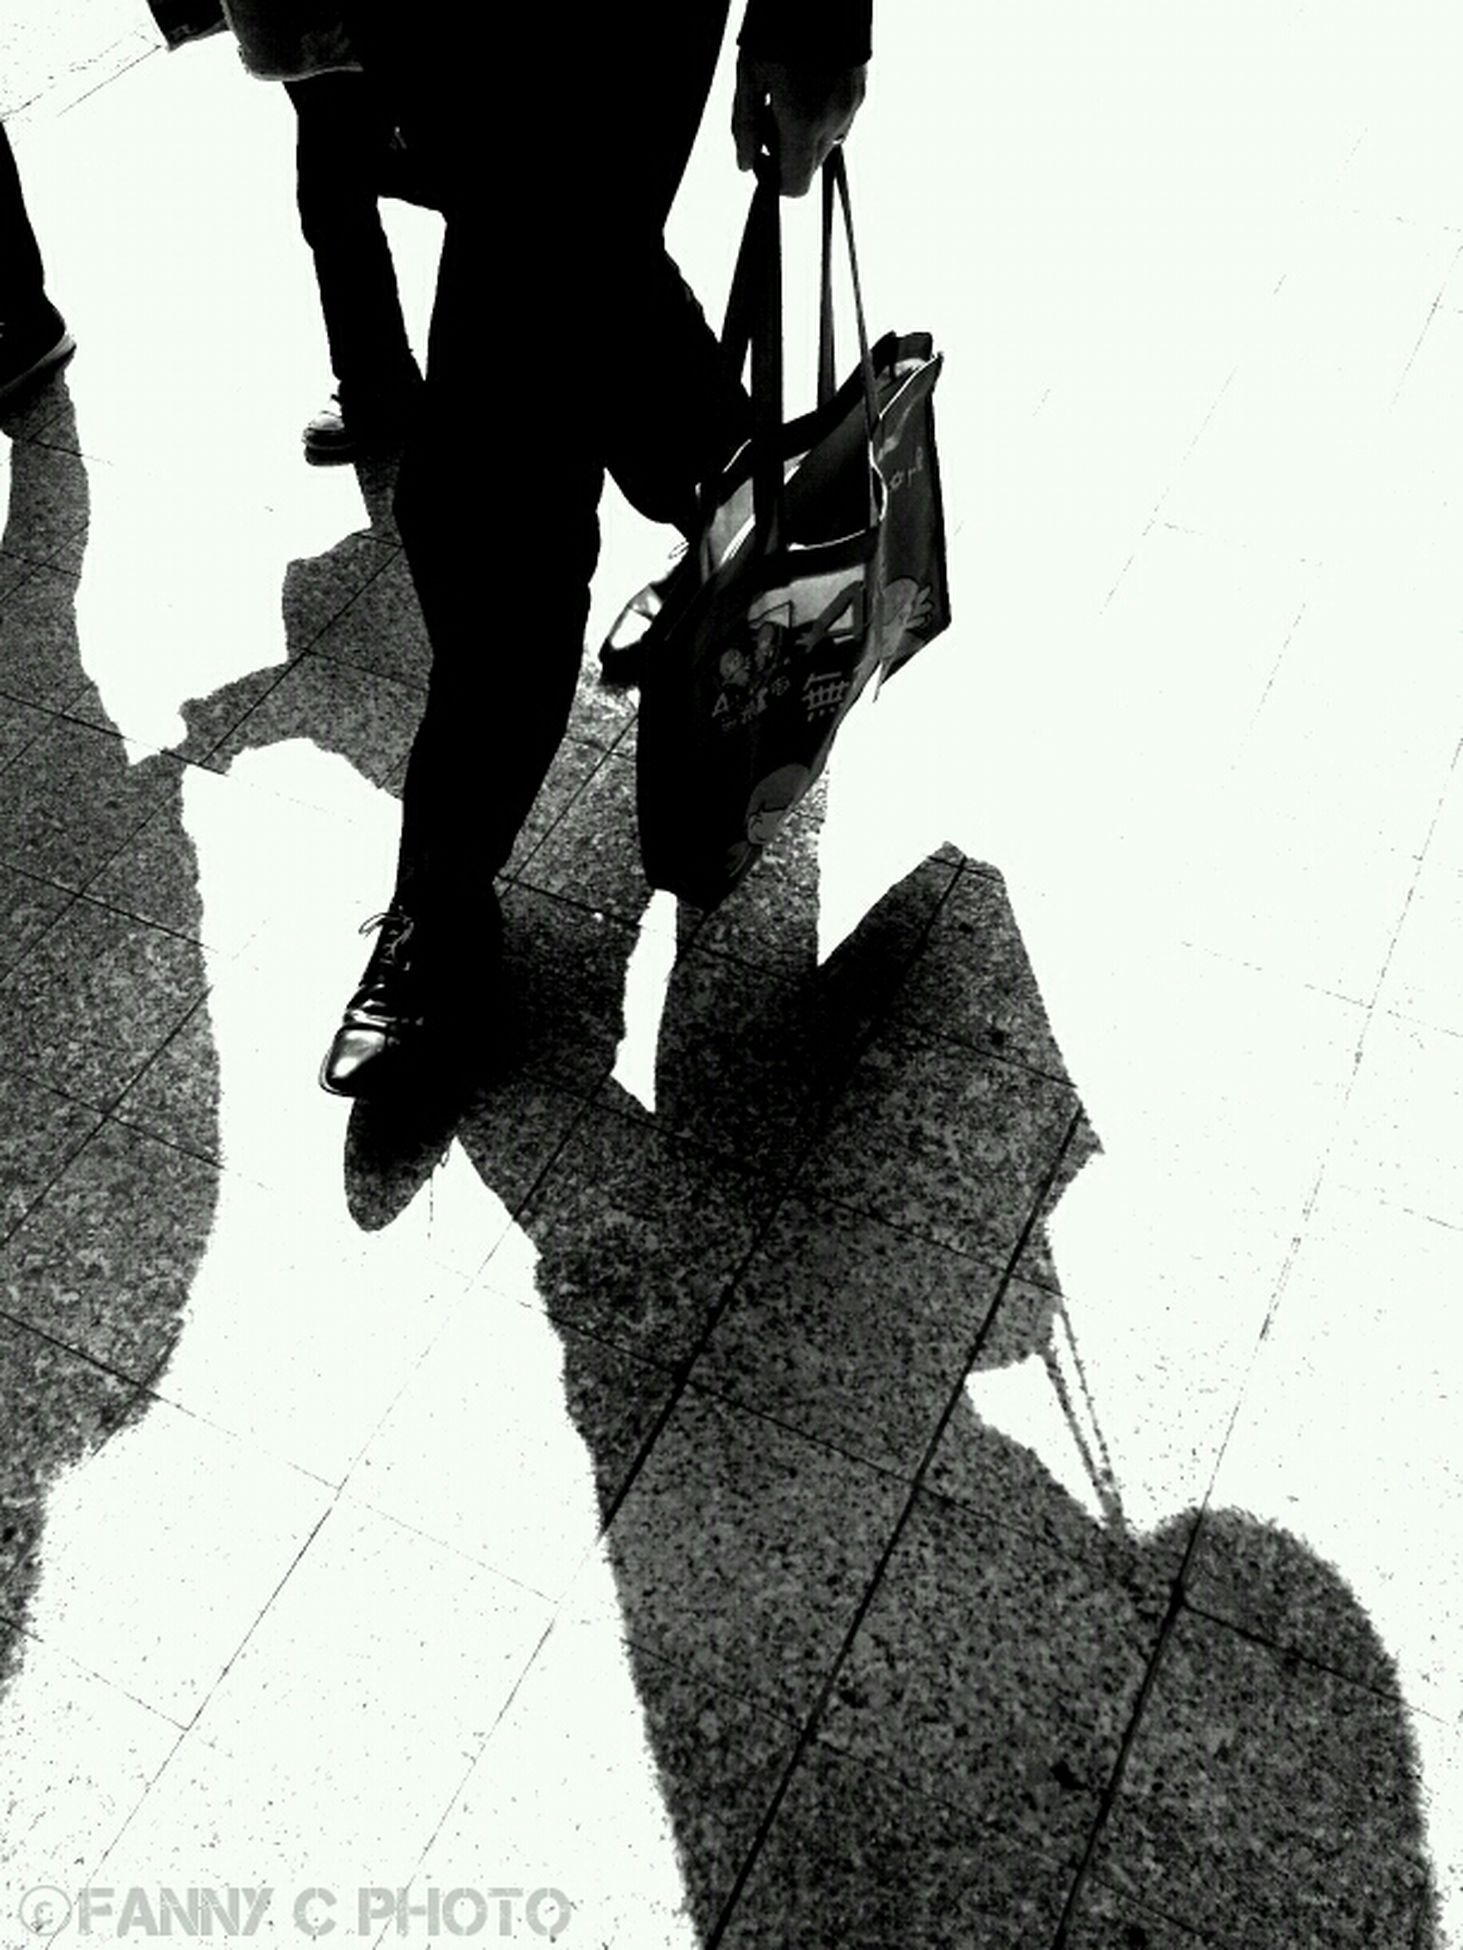 Walking Blackandwhite Shadow